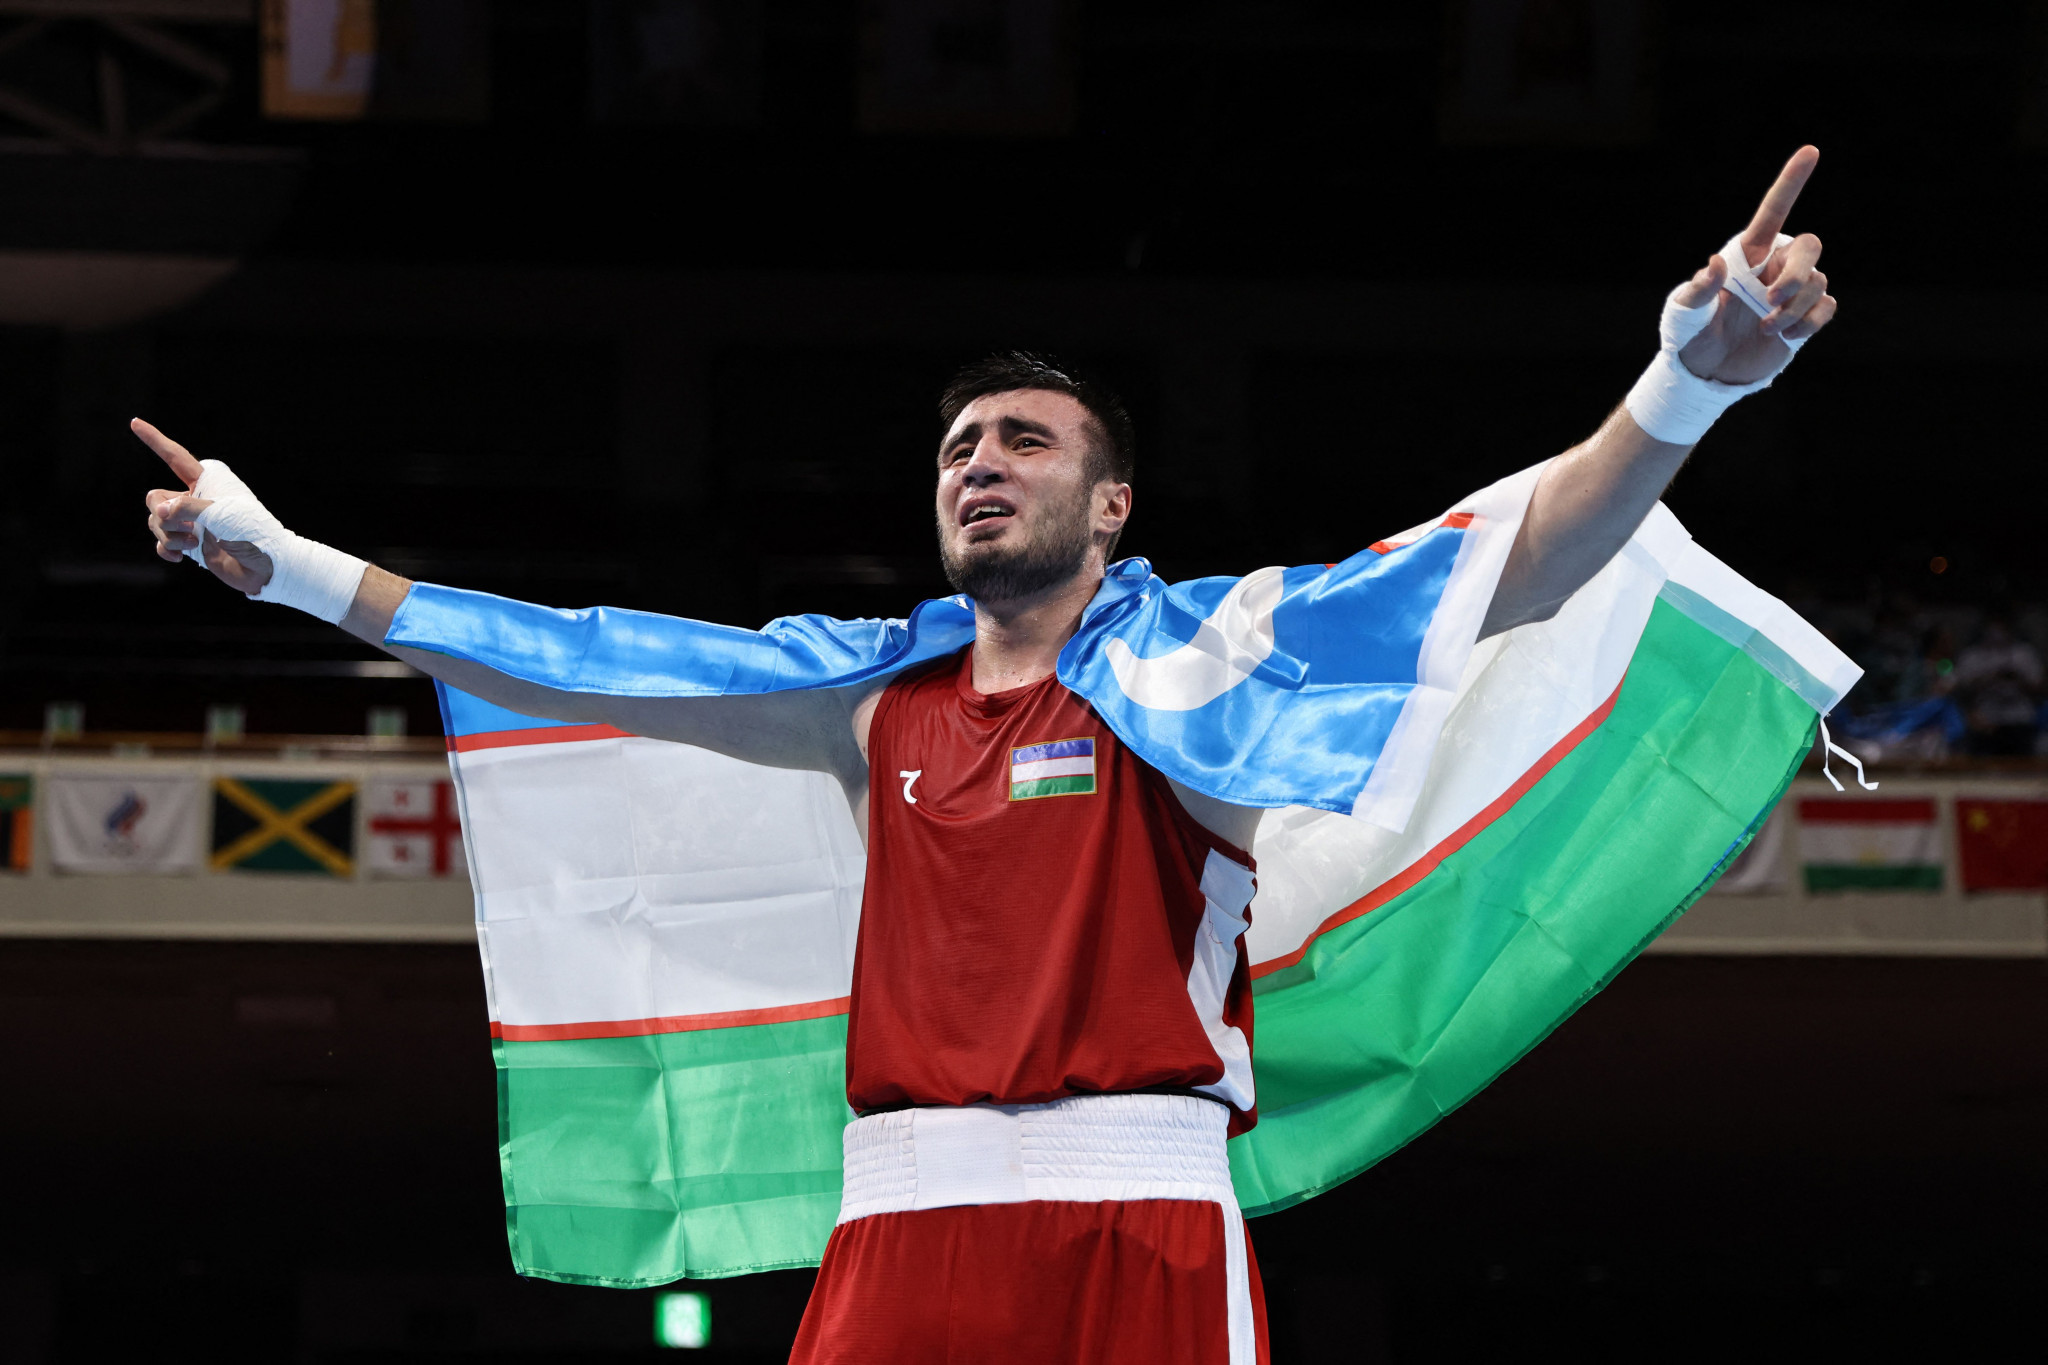 Olympic champion Jalolov among nominees for AIBA Athletes Committee